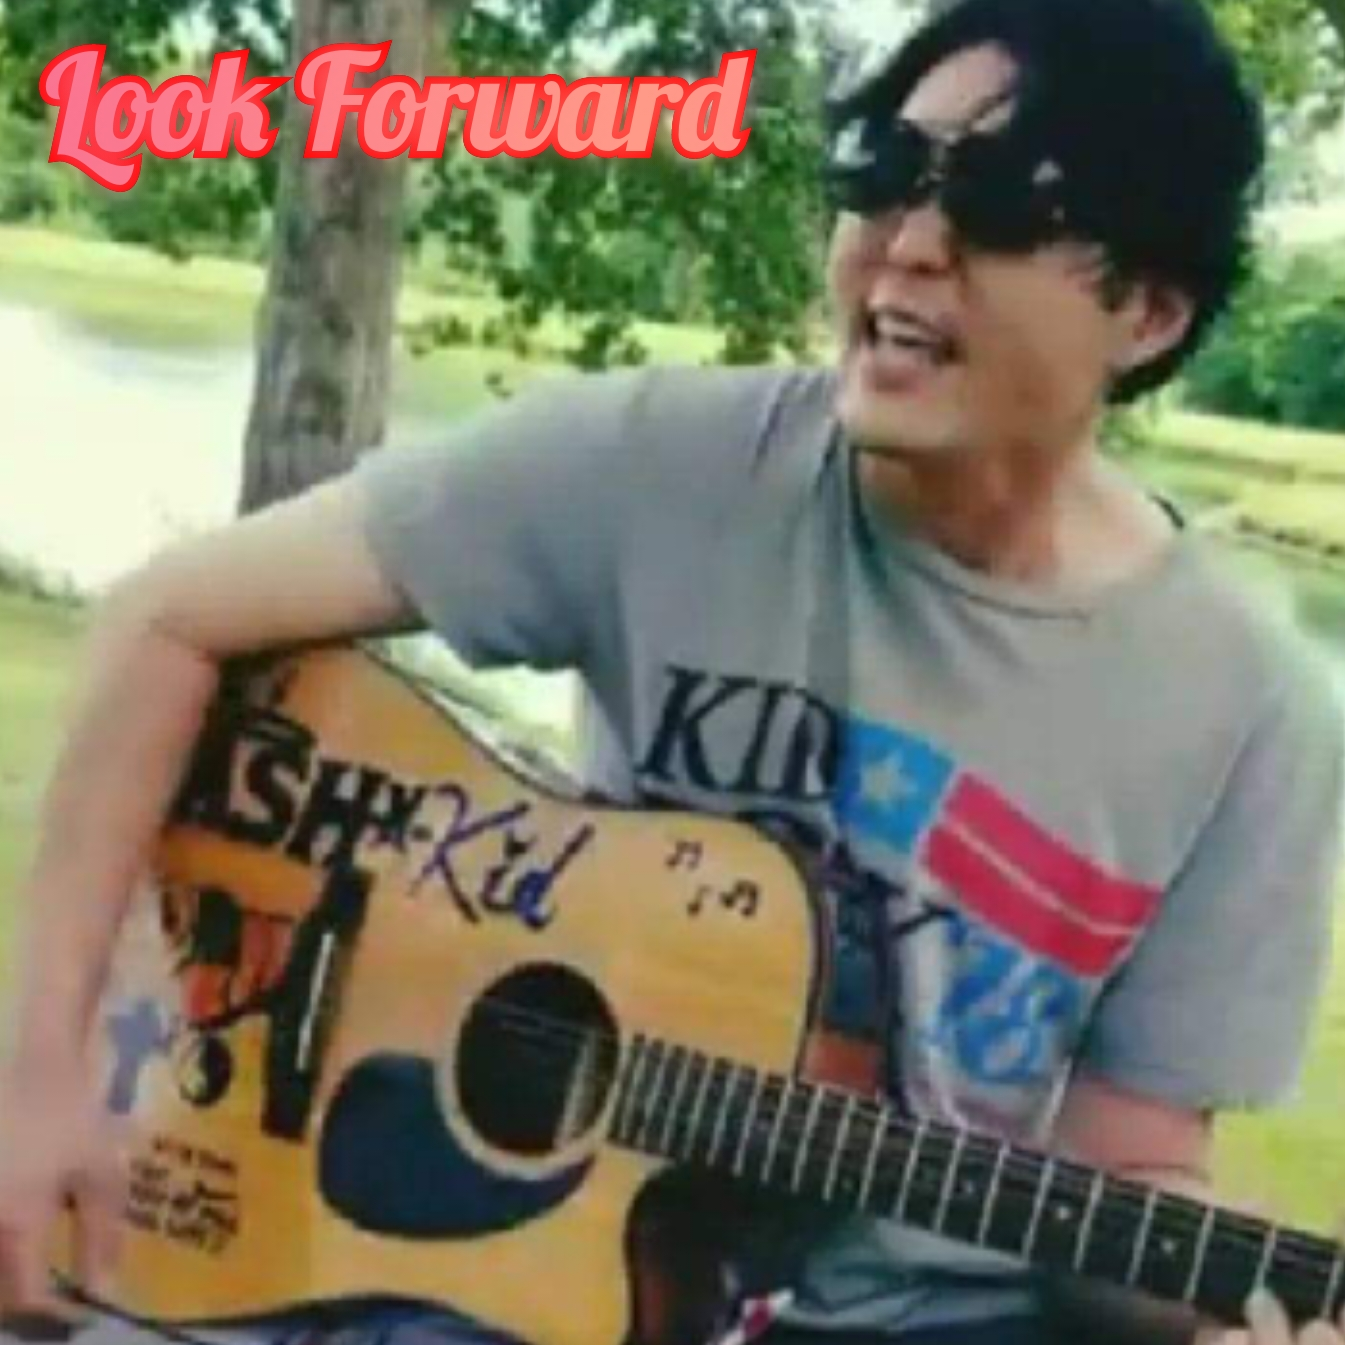 Crafting Fusions of Upbeat Hip Hop and Rhythmic Rock: Up-and-Coming Rock Superstar Kid Fop Enthralls Audiences with Latest Single 'Look Forward to Another Day'